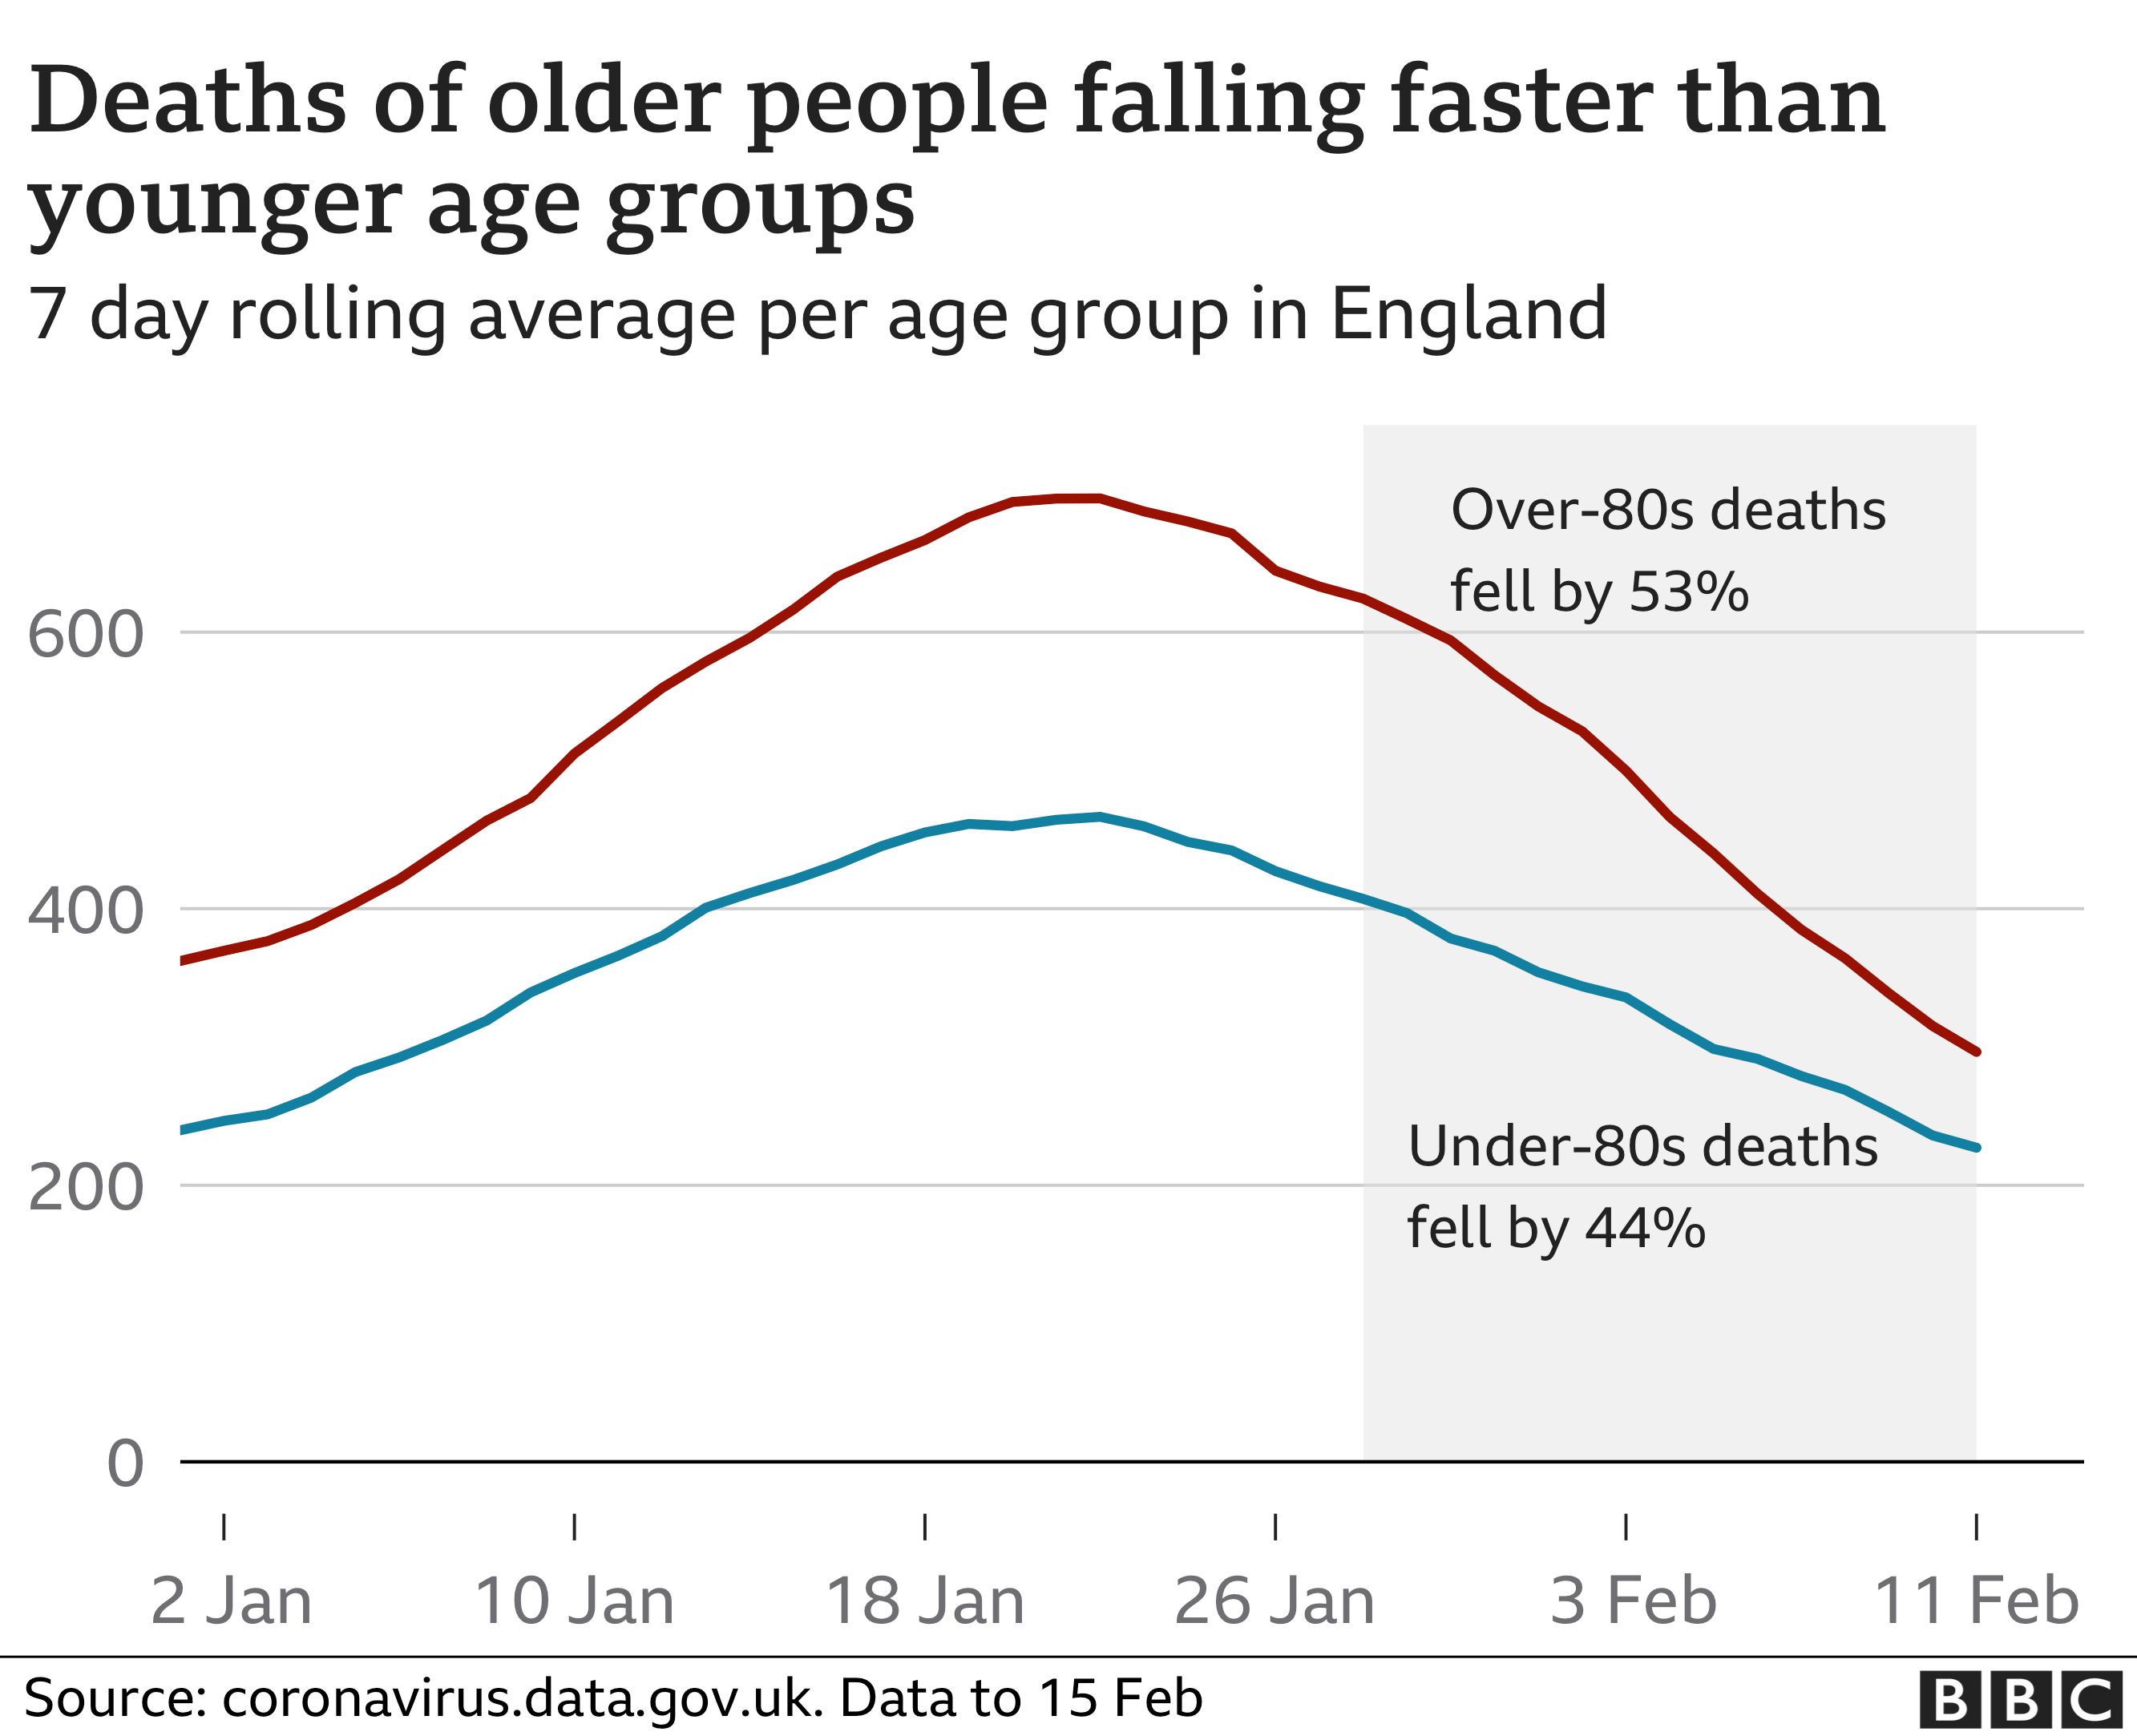 Chart showing that deaths for people aged 80+ are falling faster than under-80s.